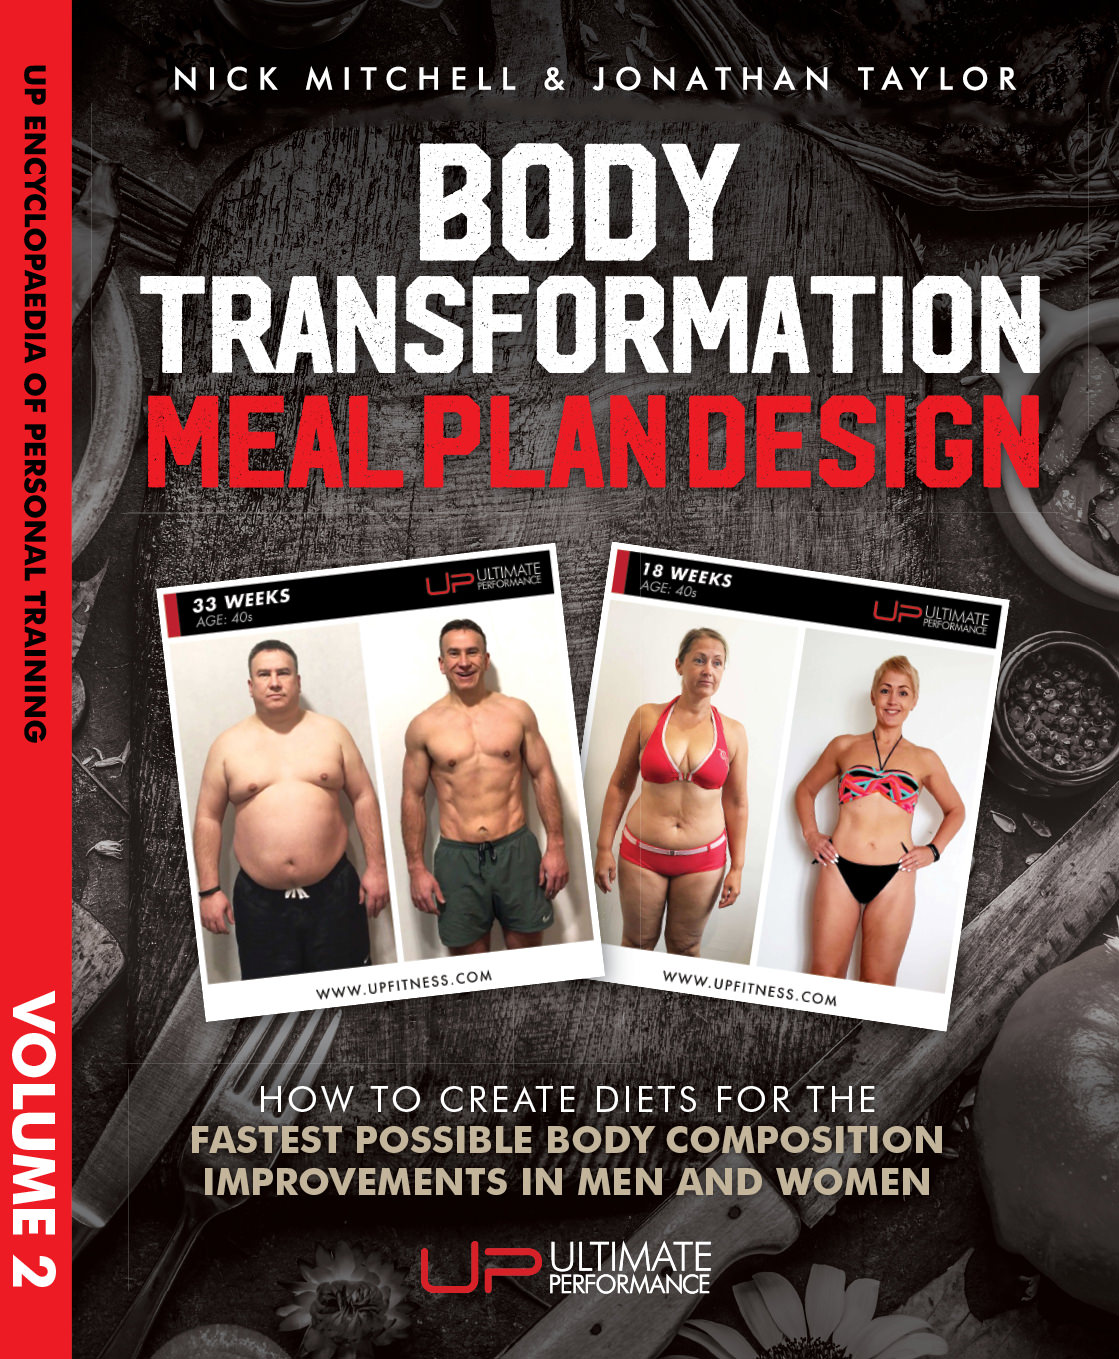 Body Transformation Meal Plan Design Online Resources